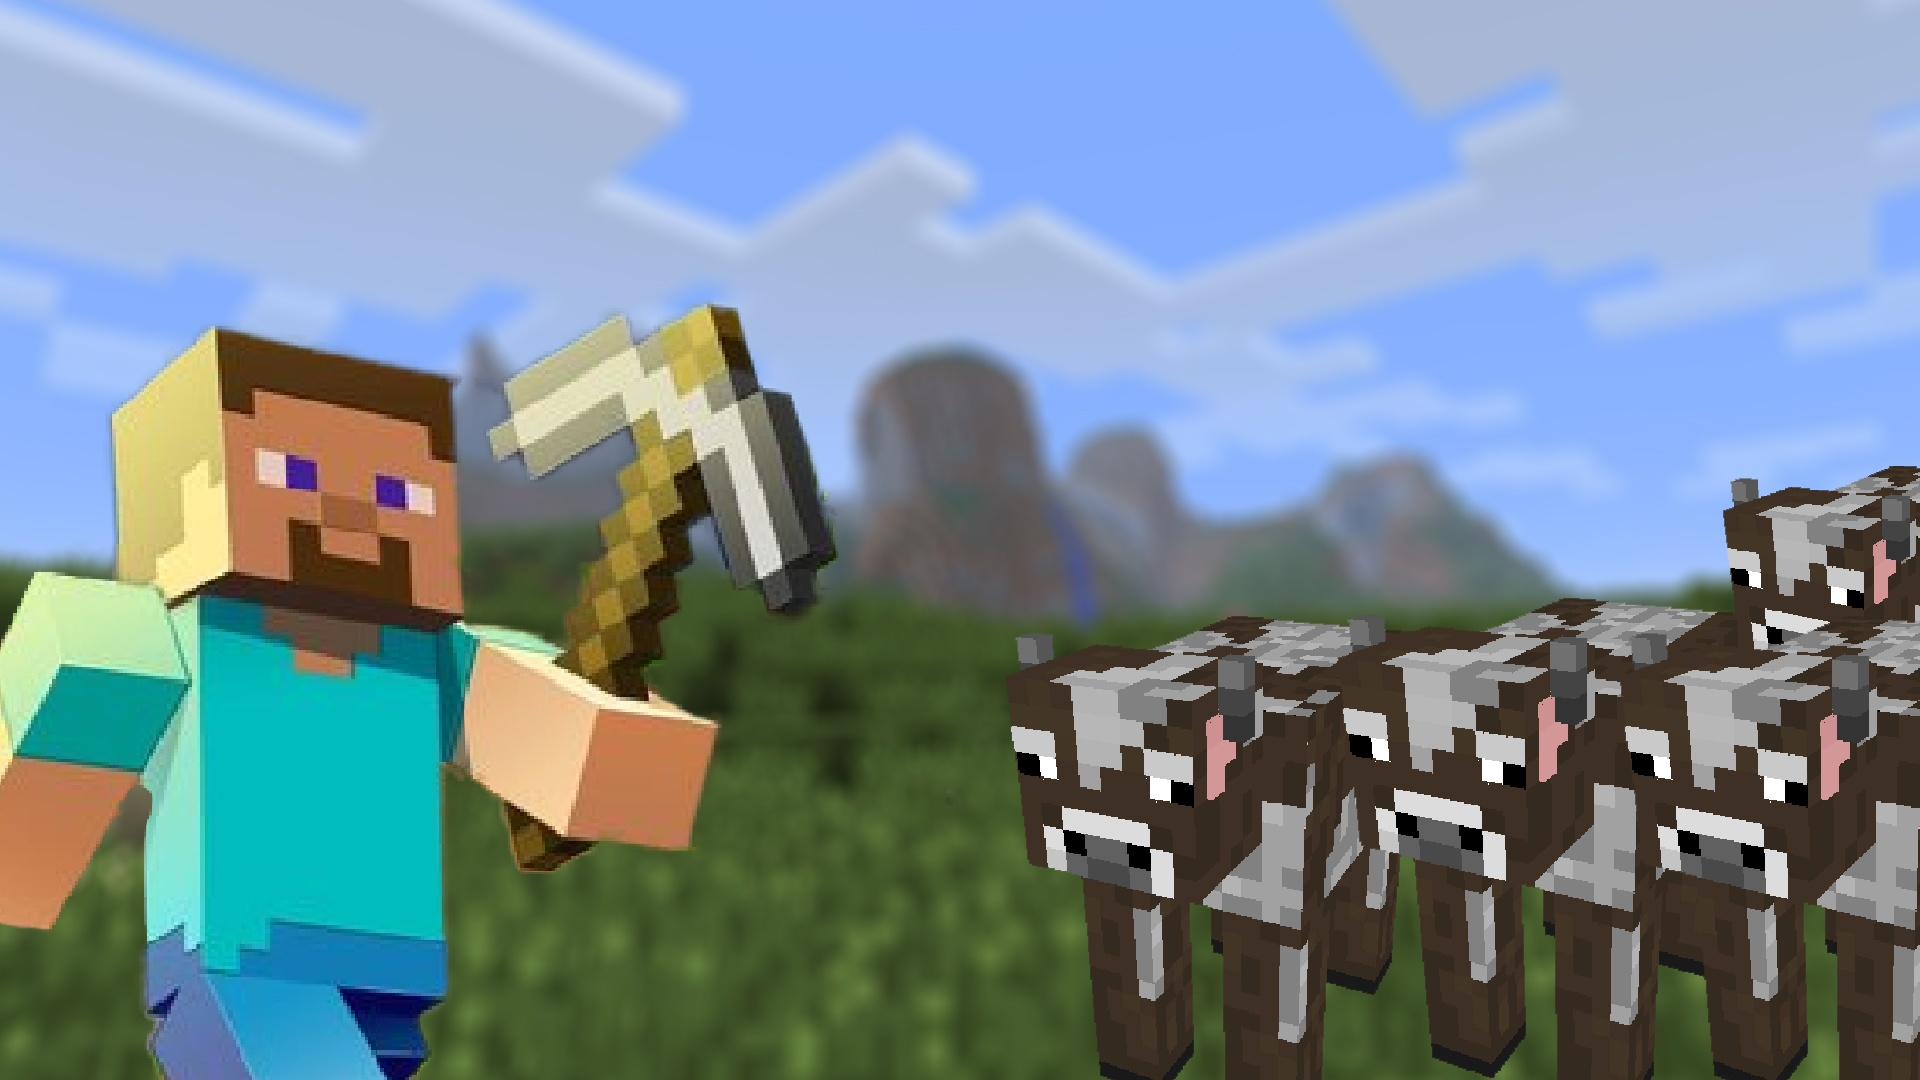 Minecraft: 100 cows and a rowboat are causing enthusiasm